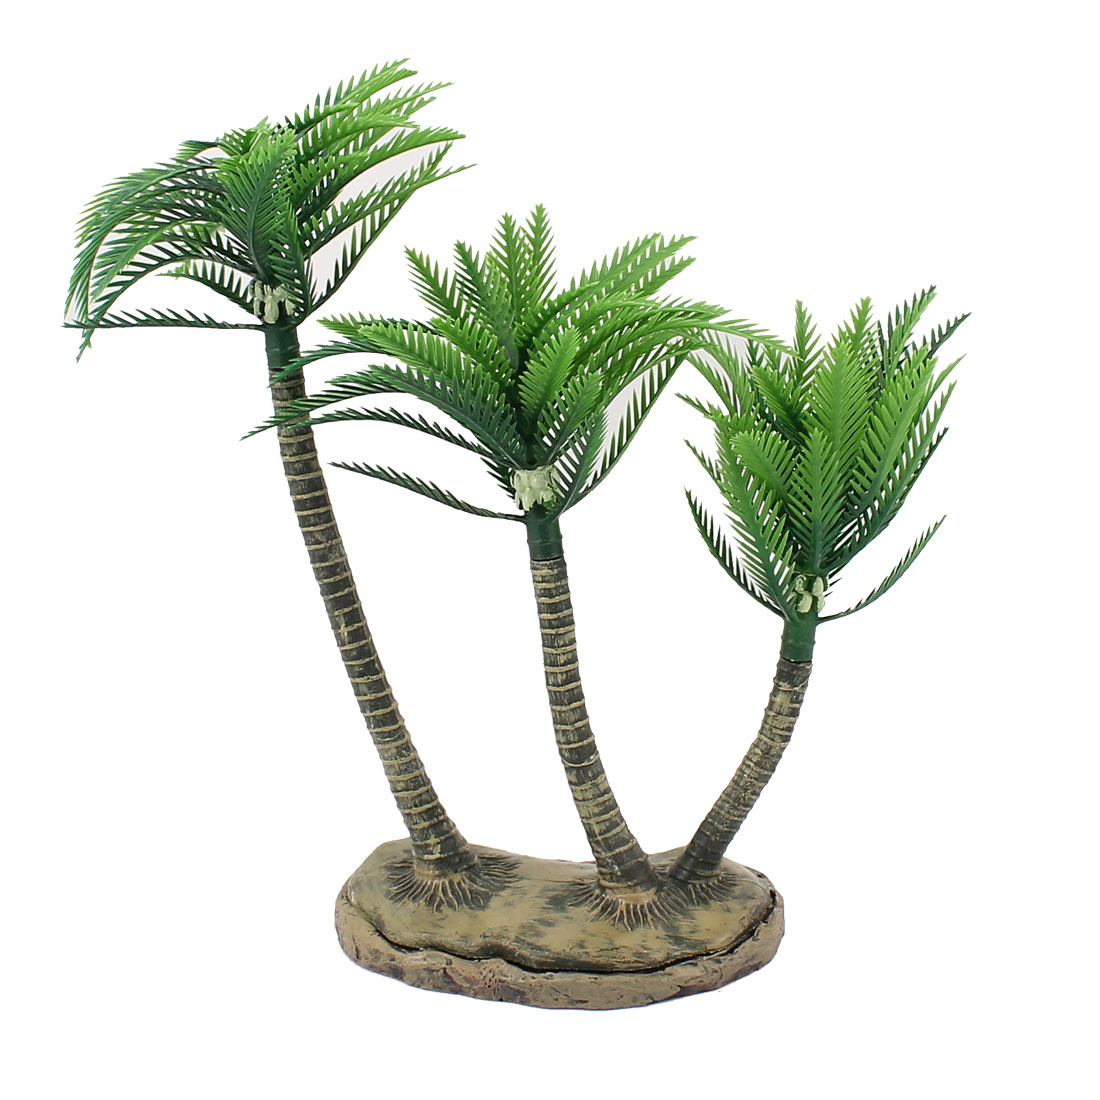 Green Tan Plastic Coconut TreeUnderwater Aquarium Plant Grass Manmade Fish Tank Decoration